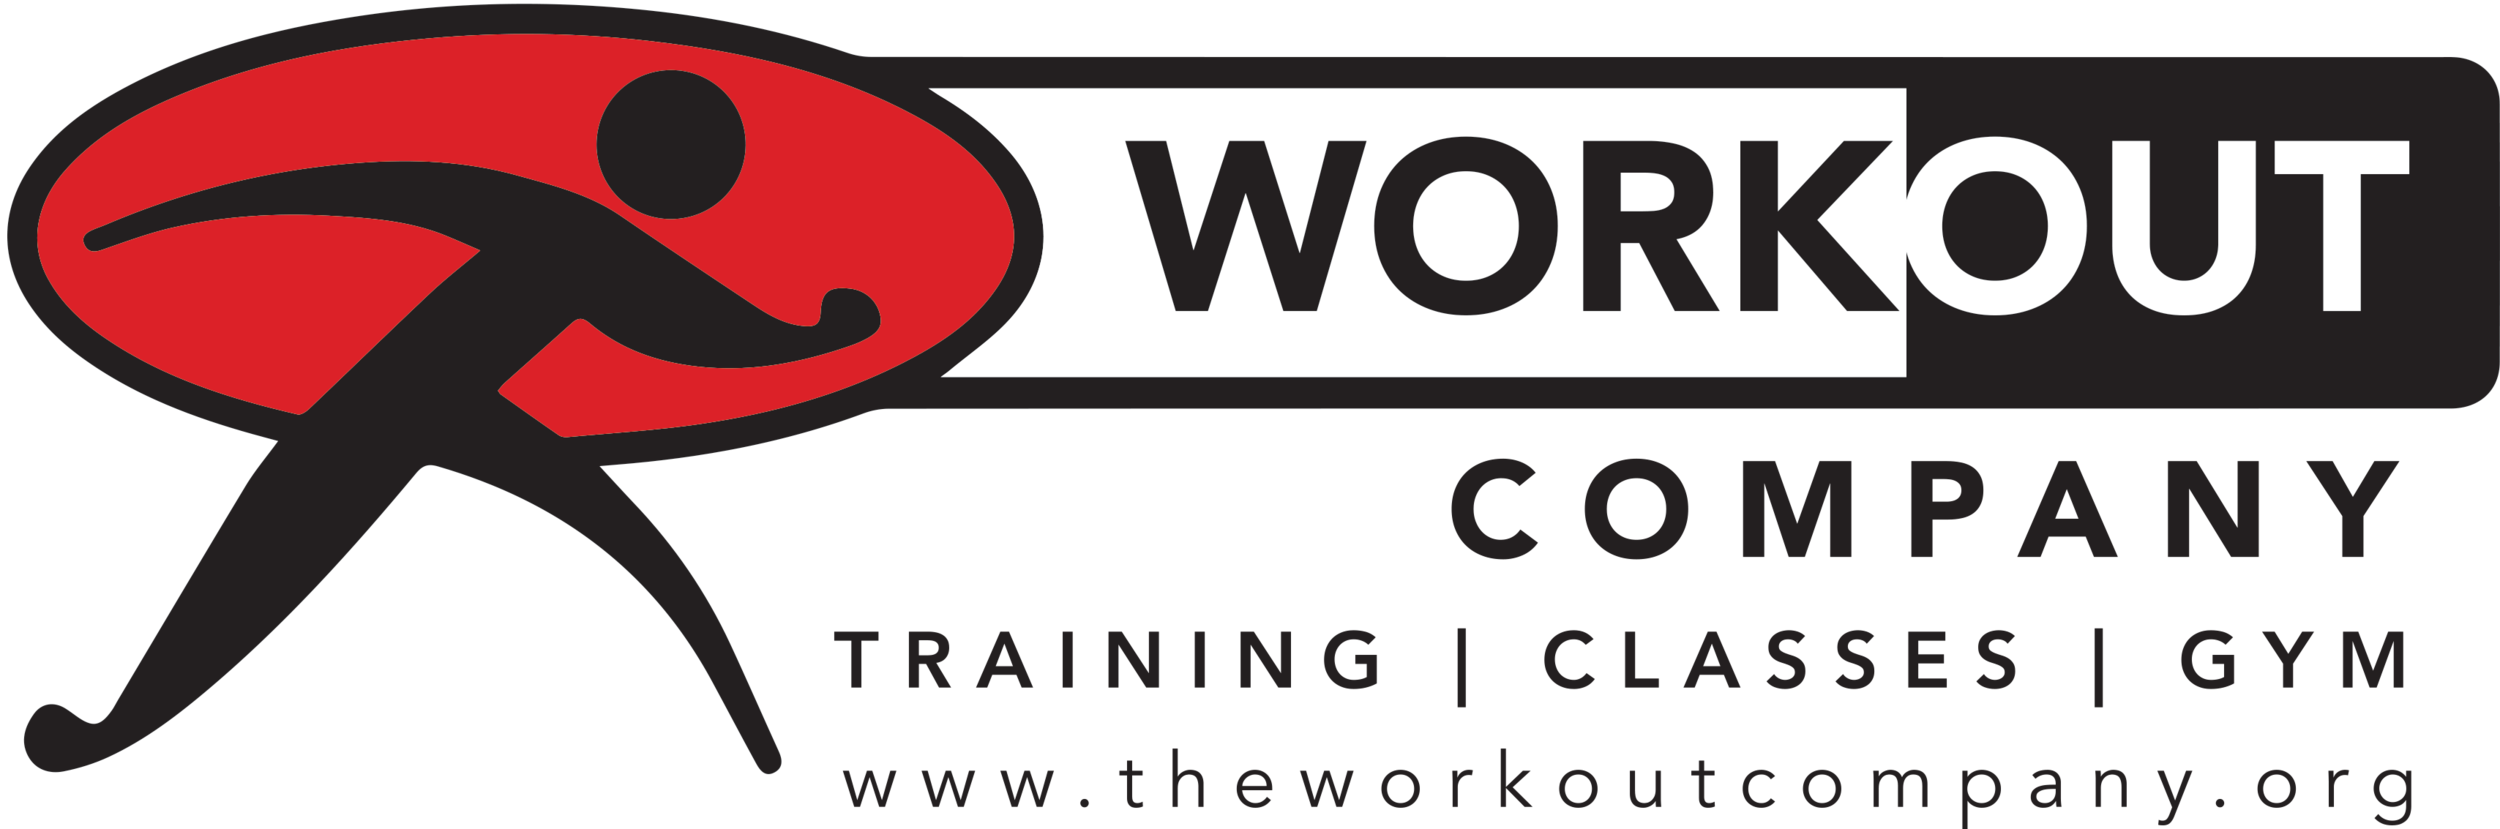 Hole Sponsor - Workout Company.png